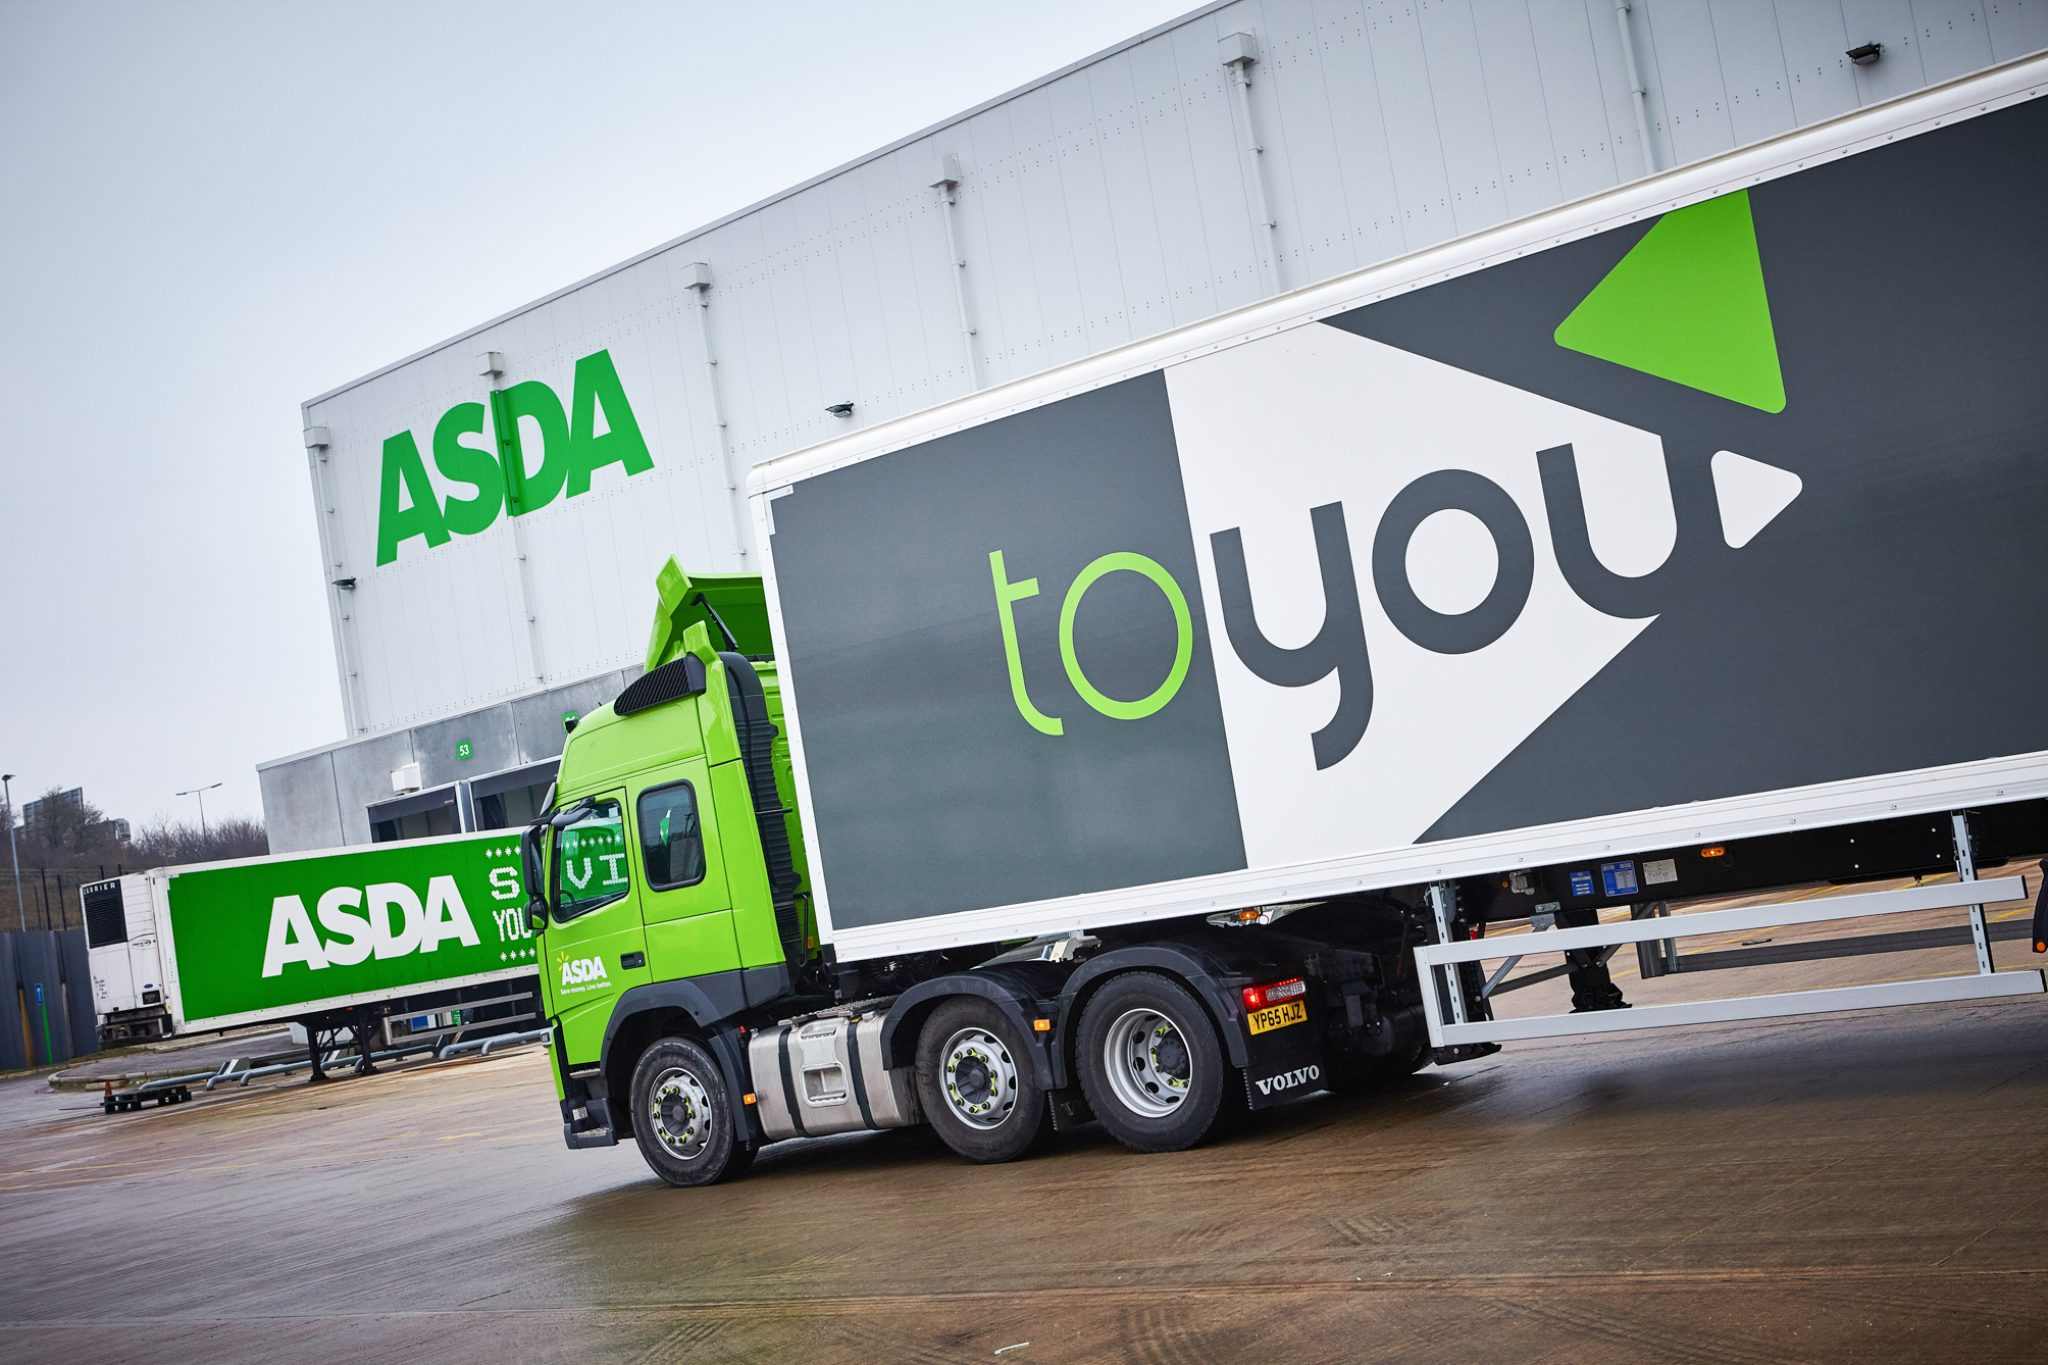 Asda is providing a clothing take-back scheme, using its ToYou service